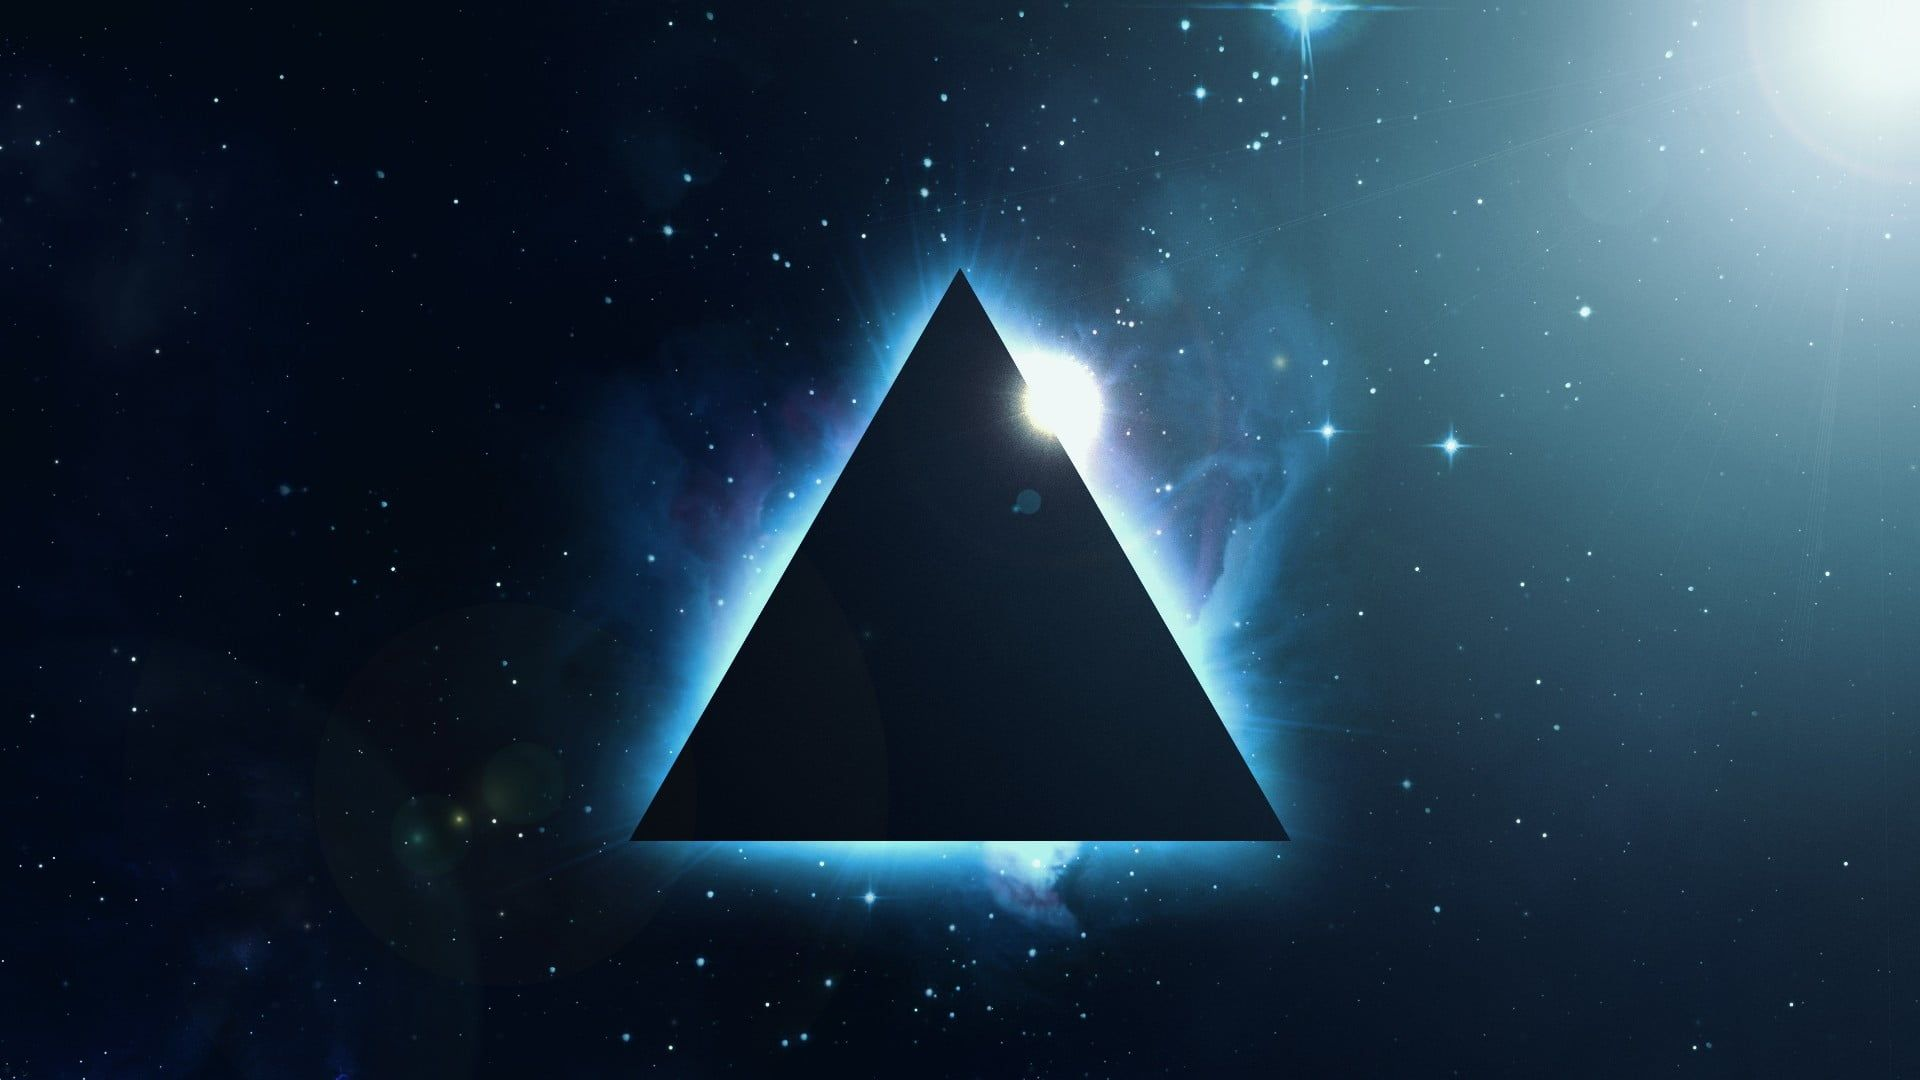 Triangle full hd 1080p wallpaper